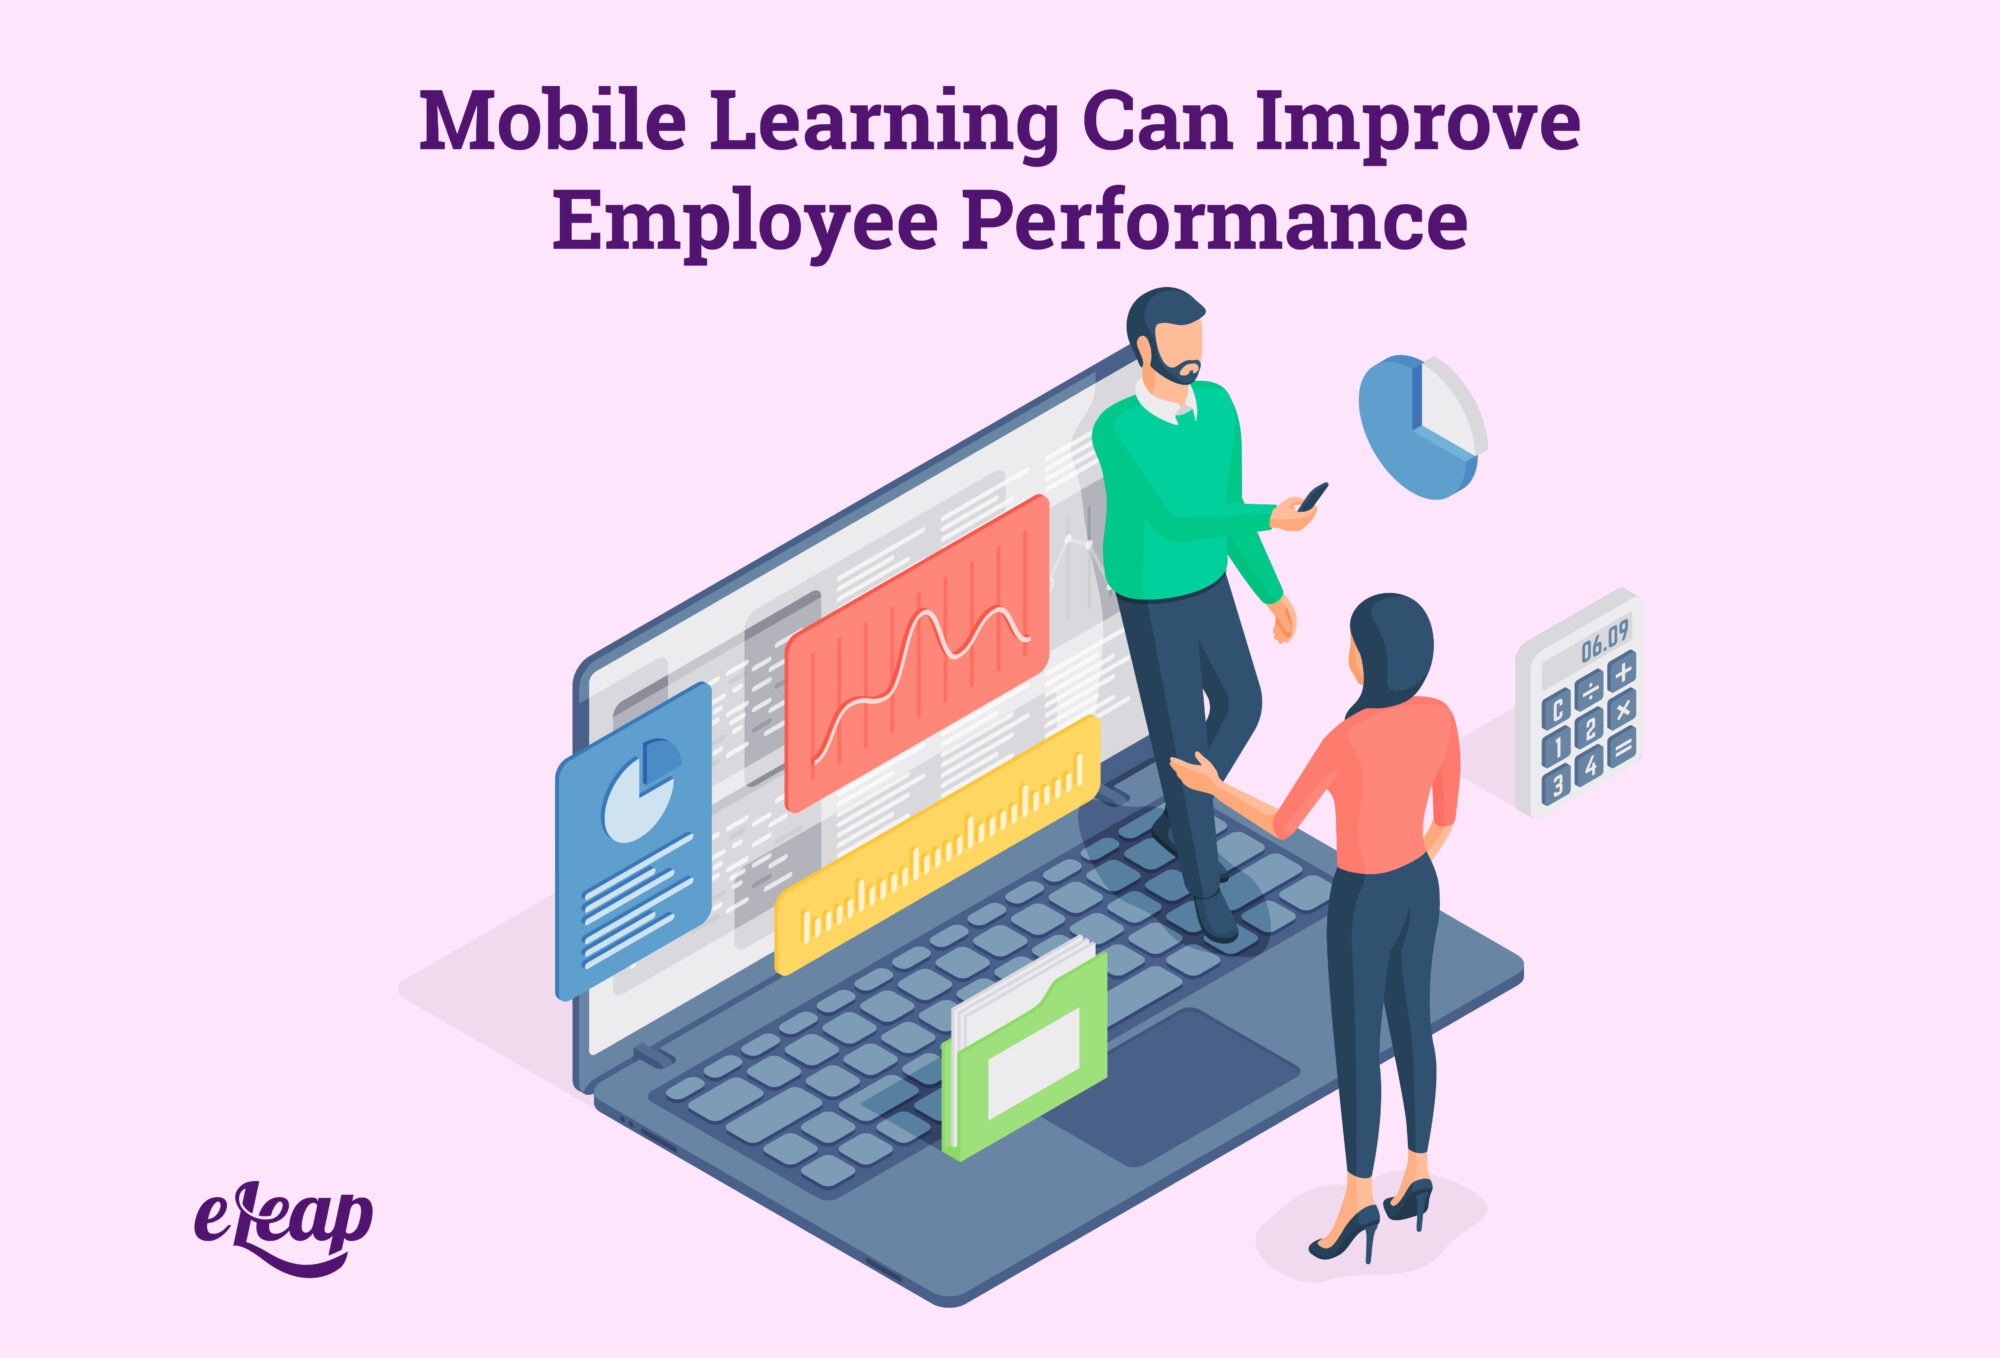 Mobile Learning Can Improve Employee Performance